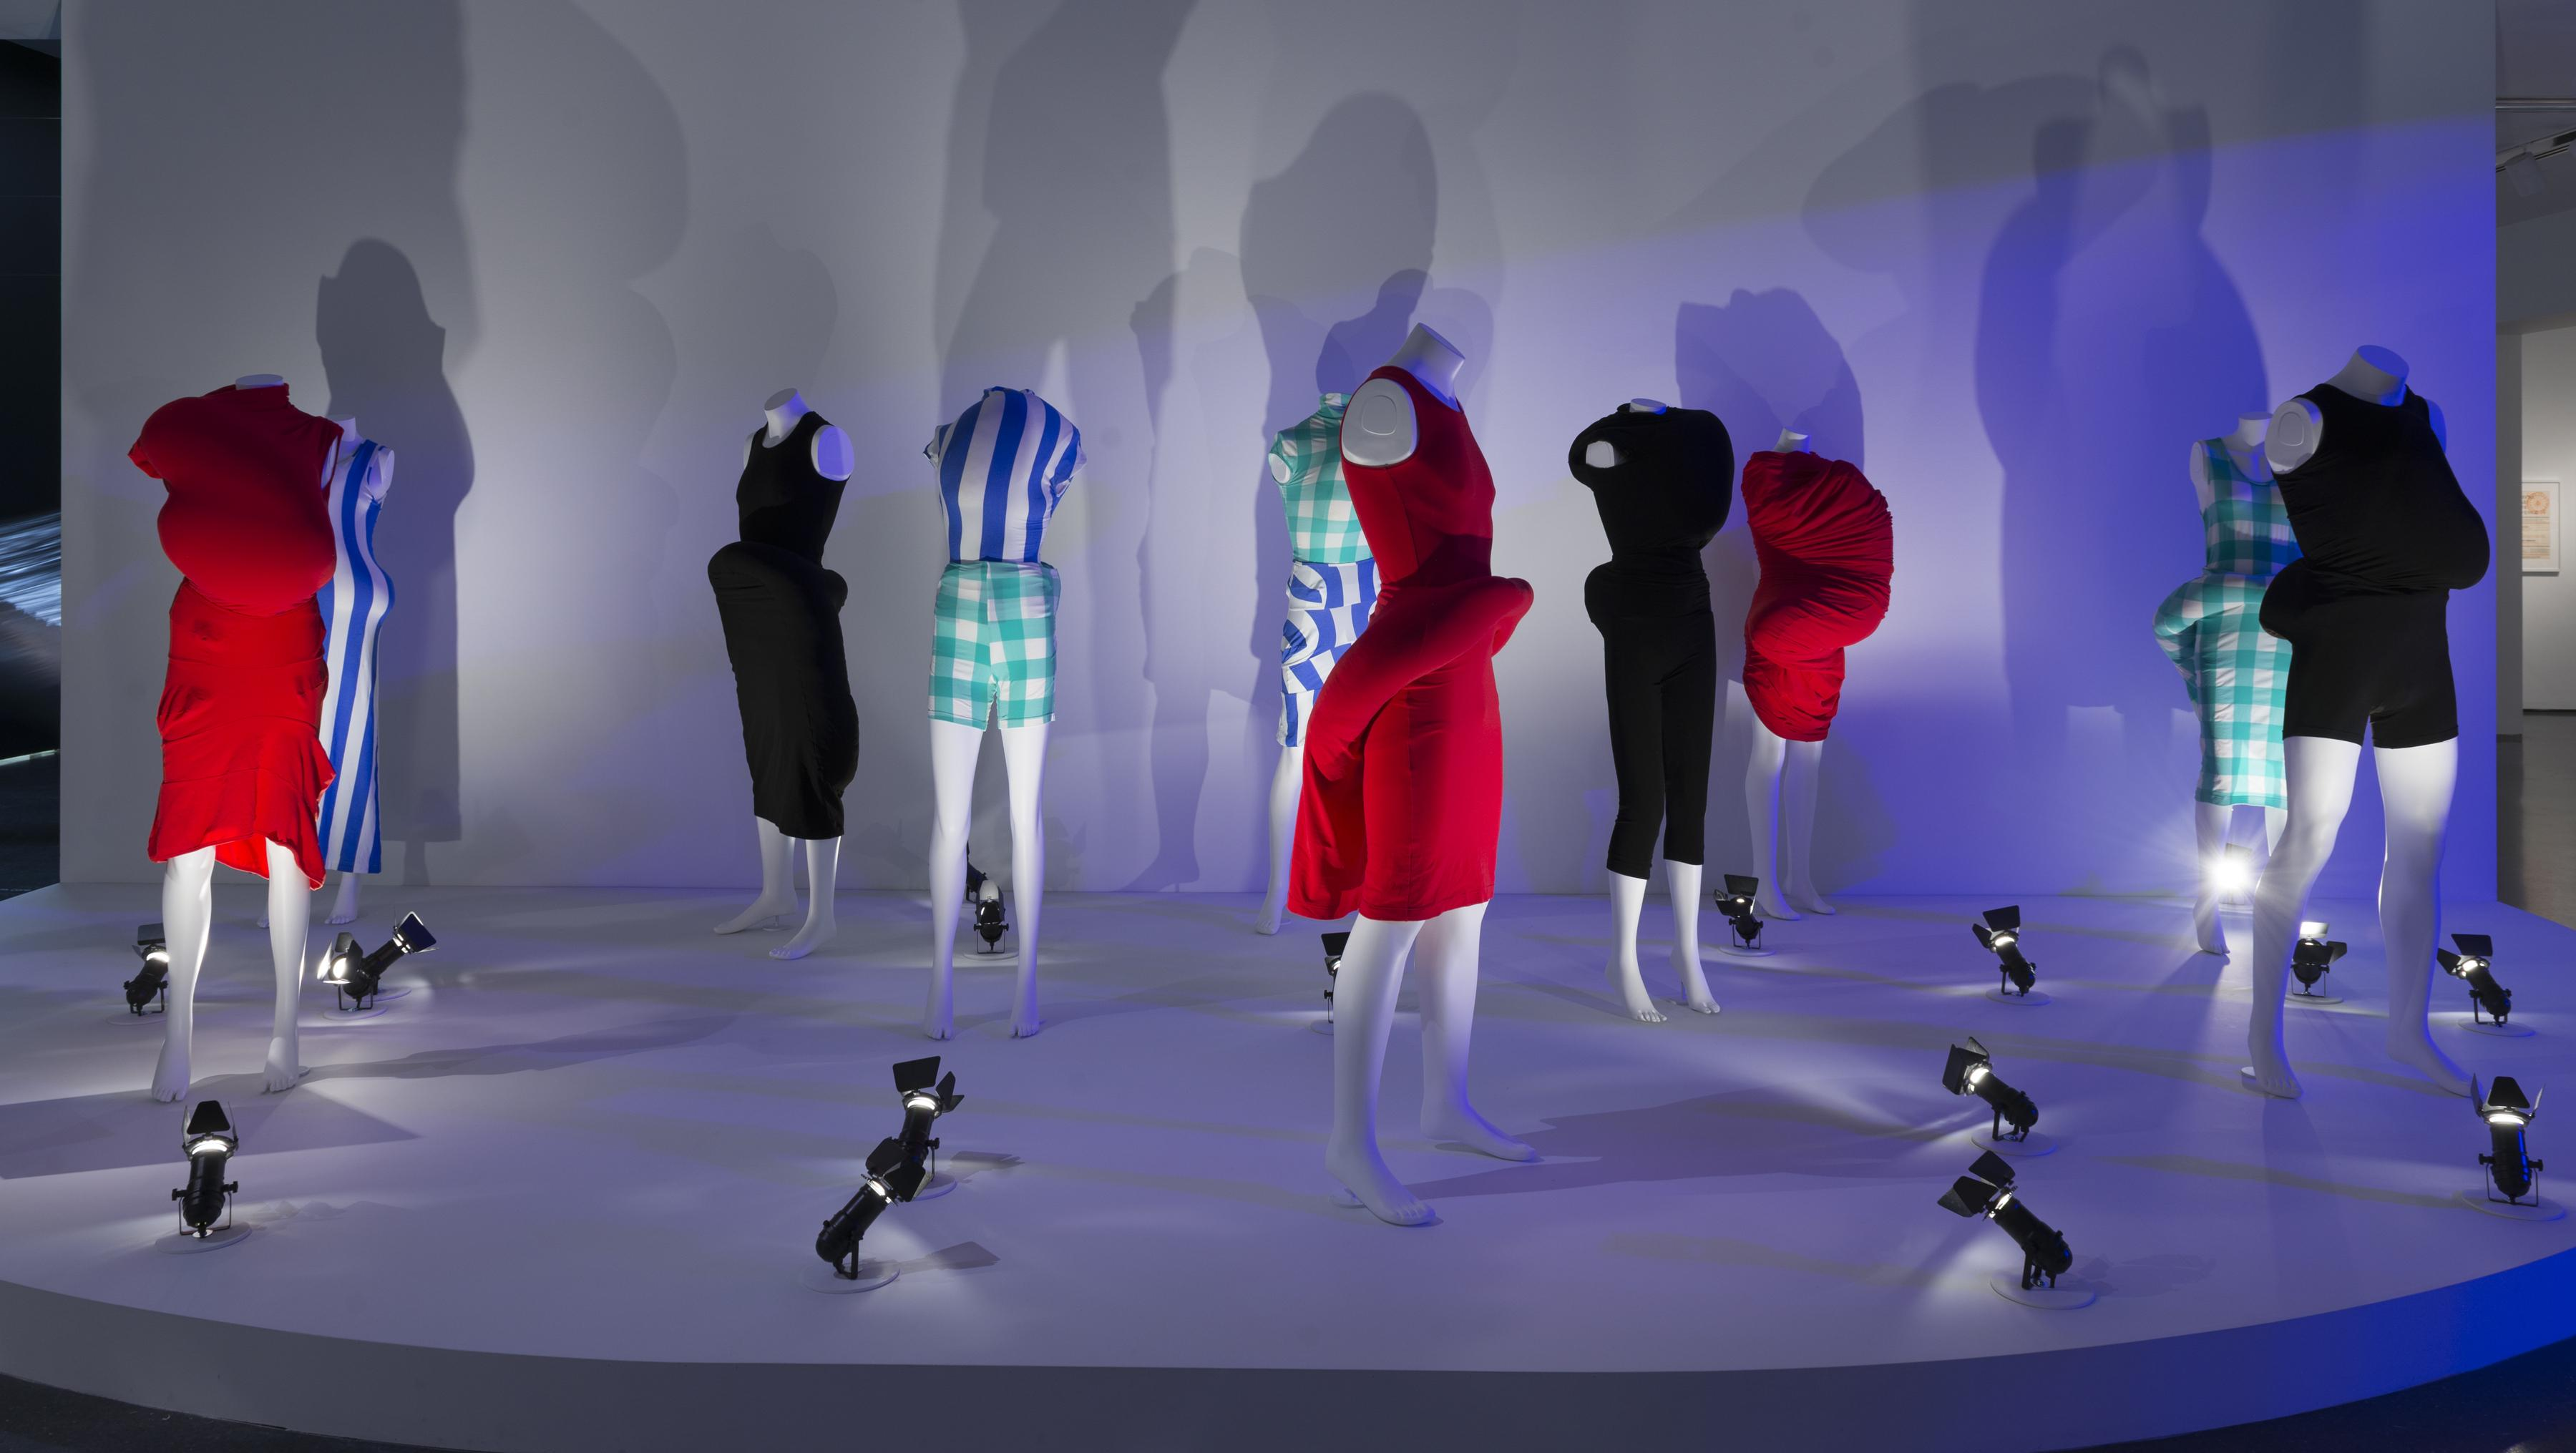 Ten headless mannequins dressed in clothing with unusual bulges are posed on a white platform and dramatically lit by spotlights on the ground.